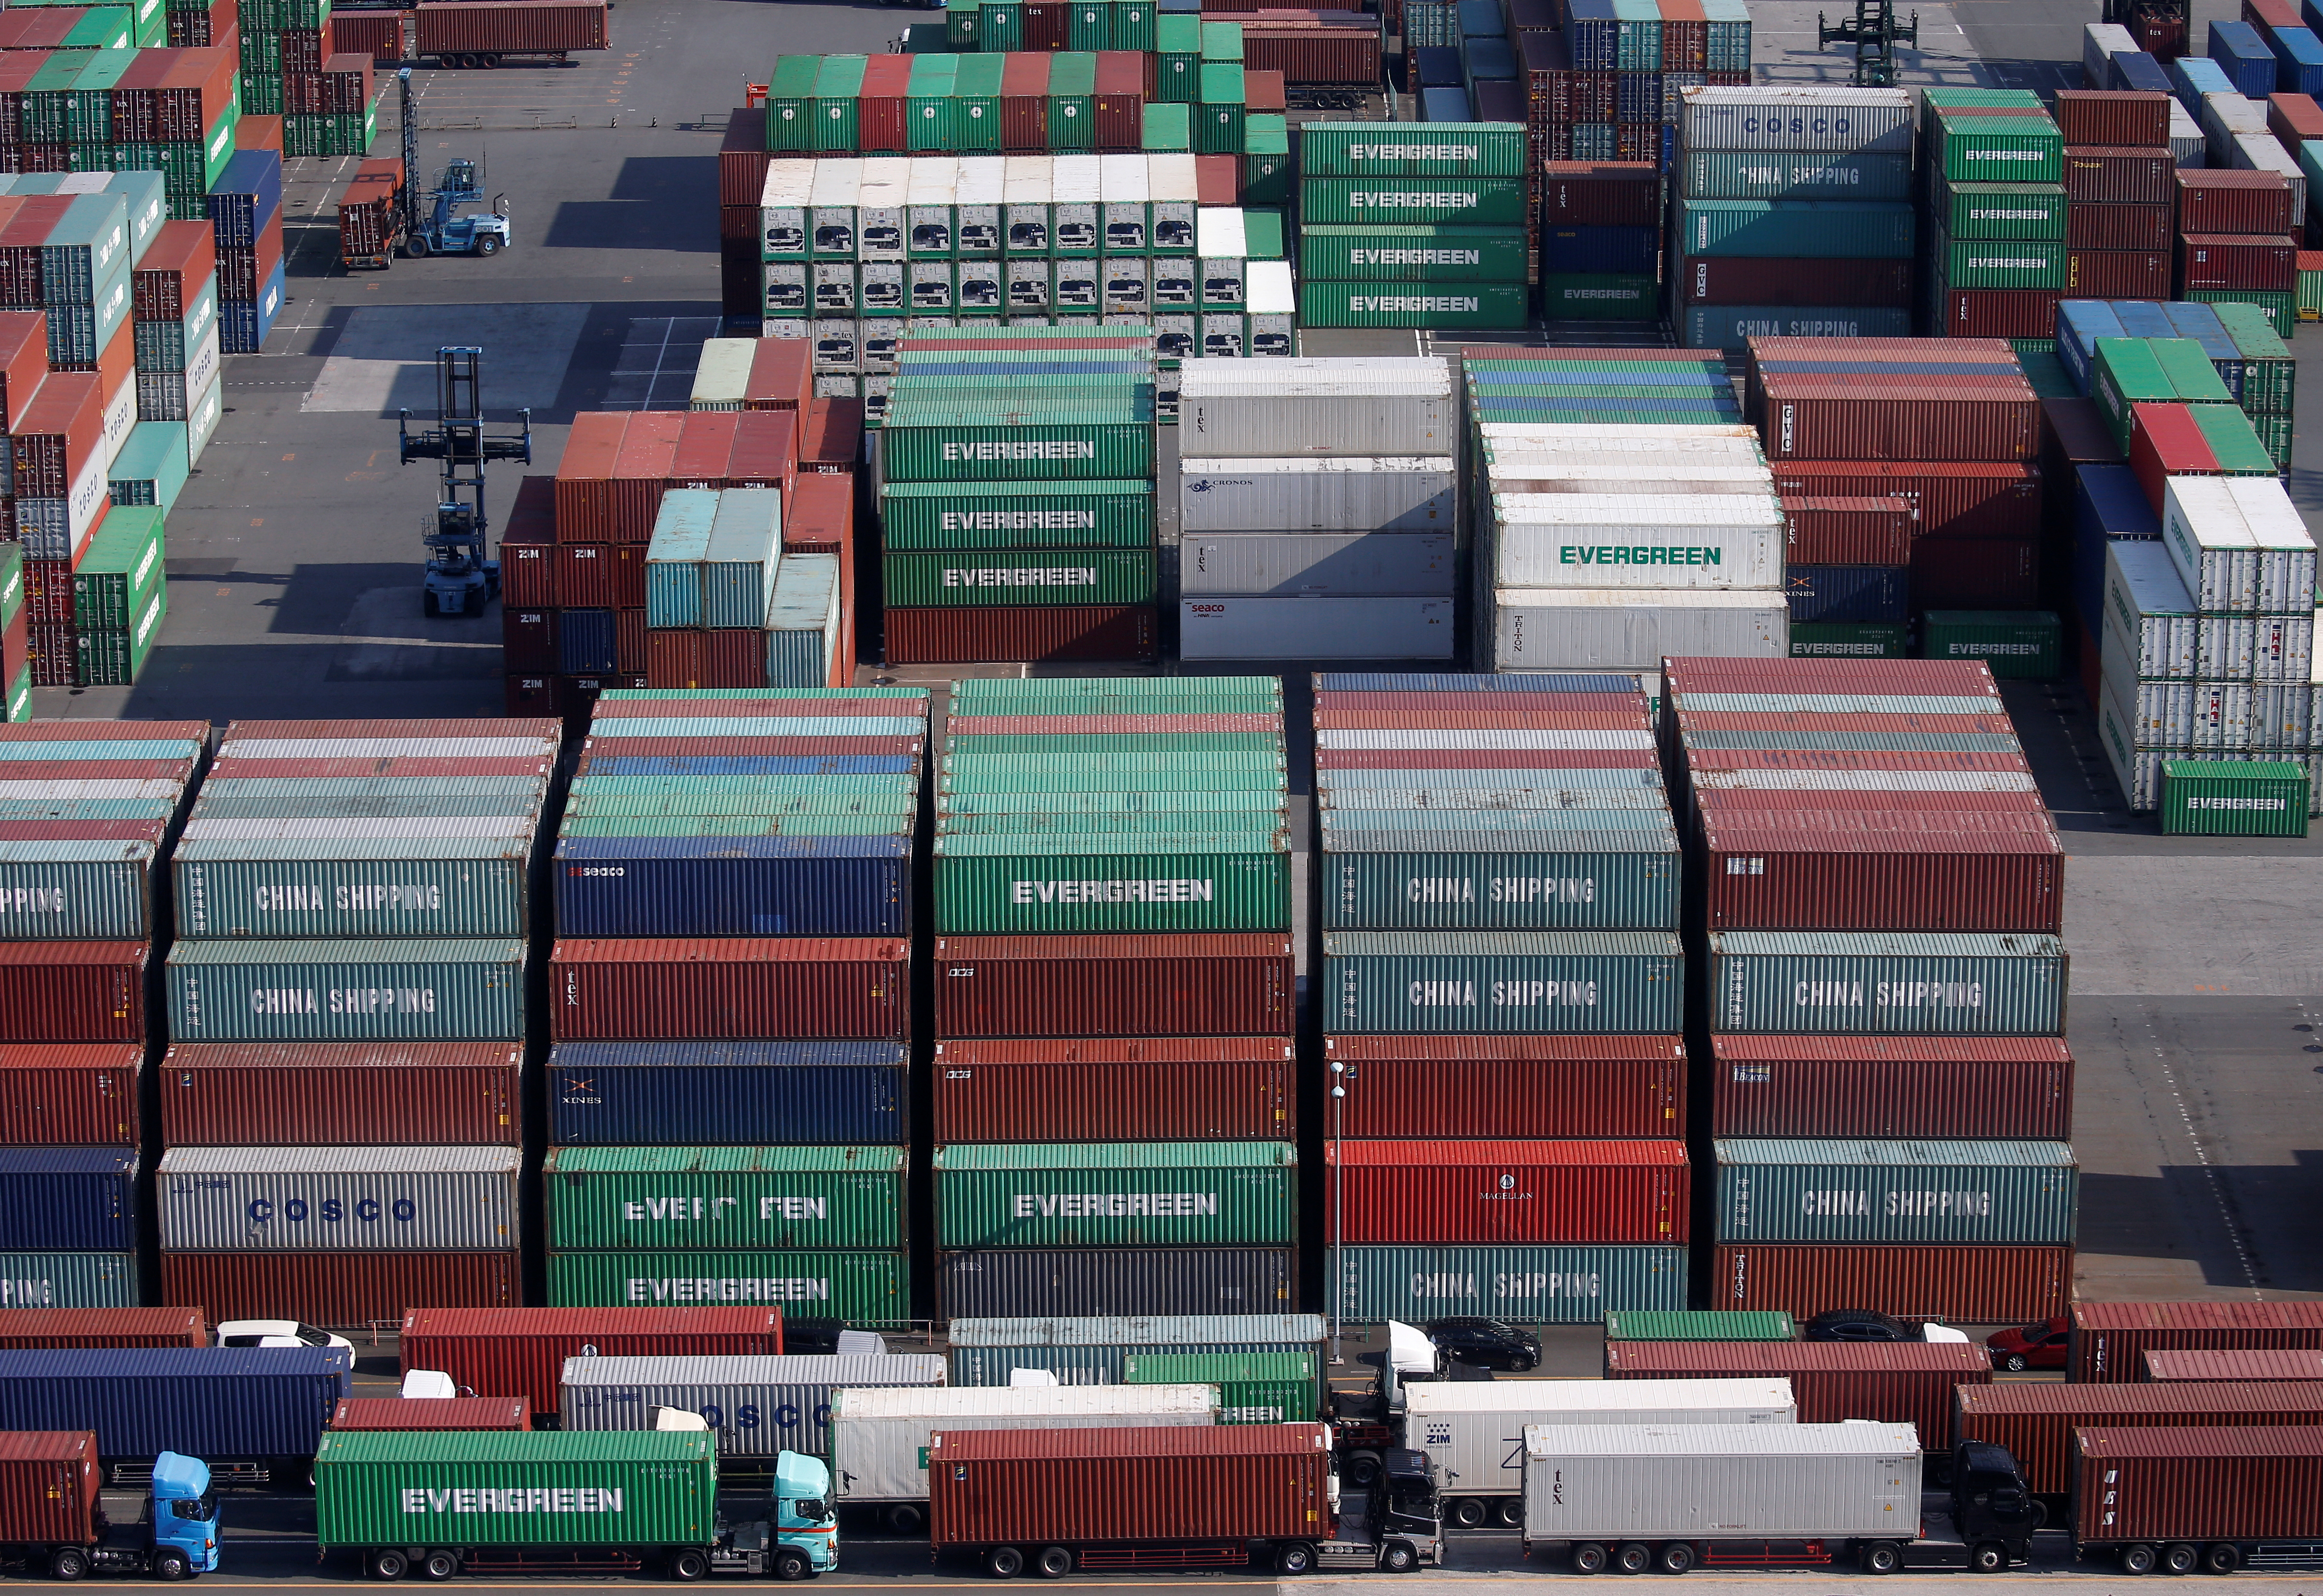 Shipping containers are seen at a port in Tokyo, Japan, March 22, 2017. REUTERS/Issei Kato